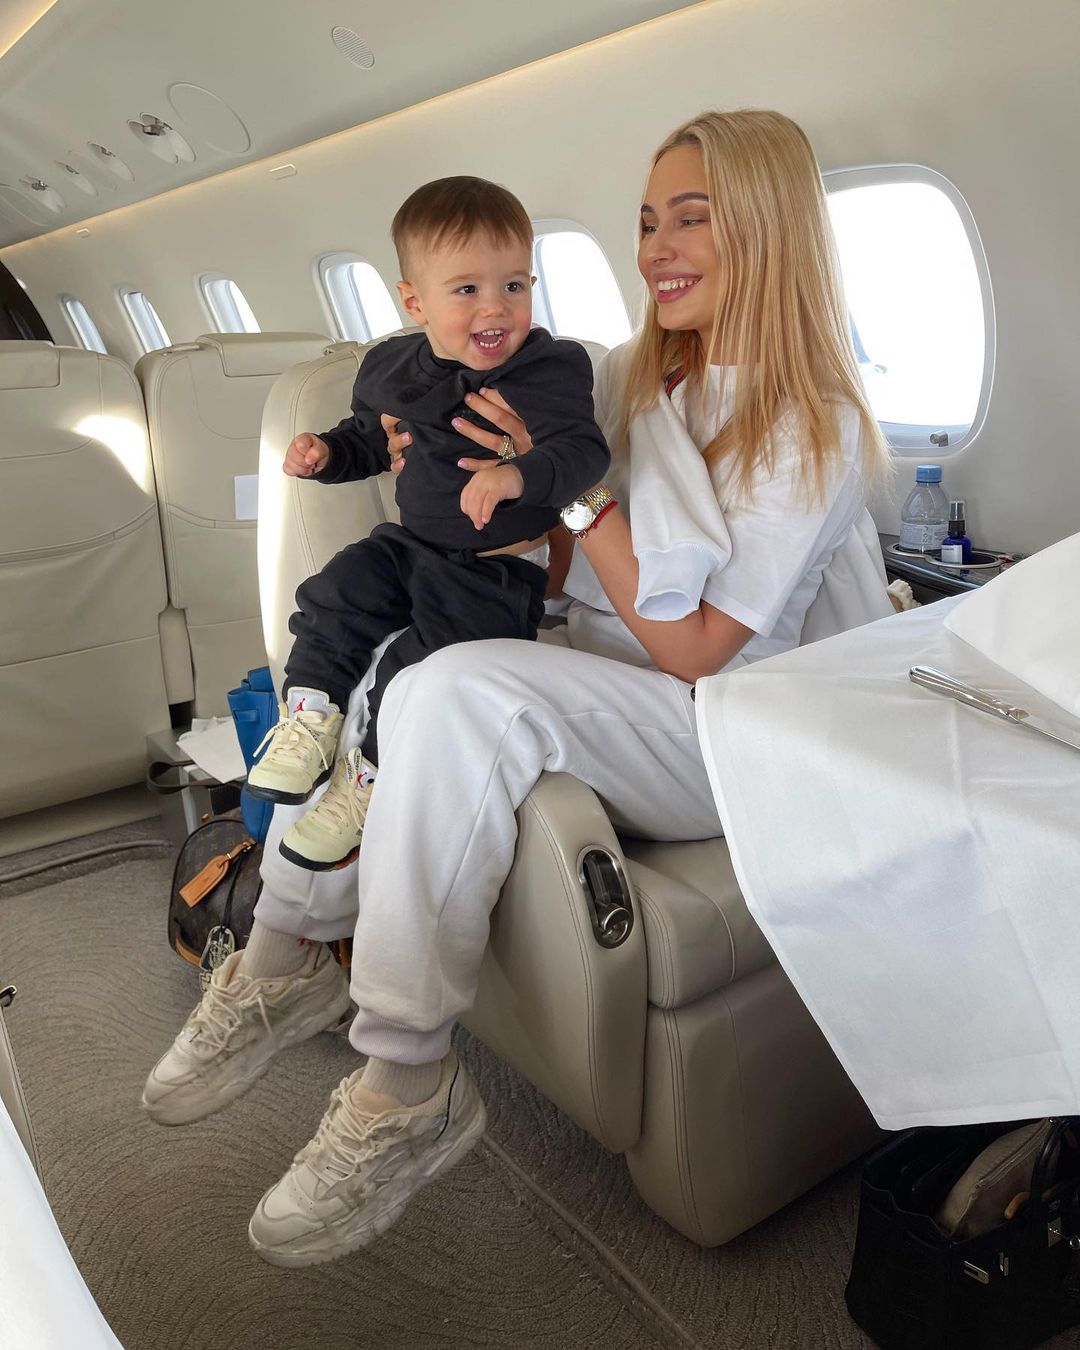 Natalia Rudova flew away to rest with her son Timati